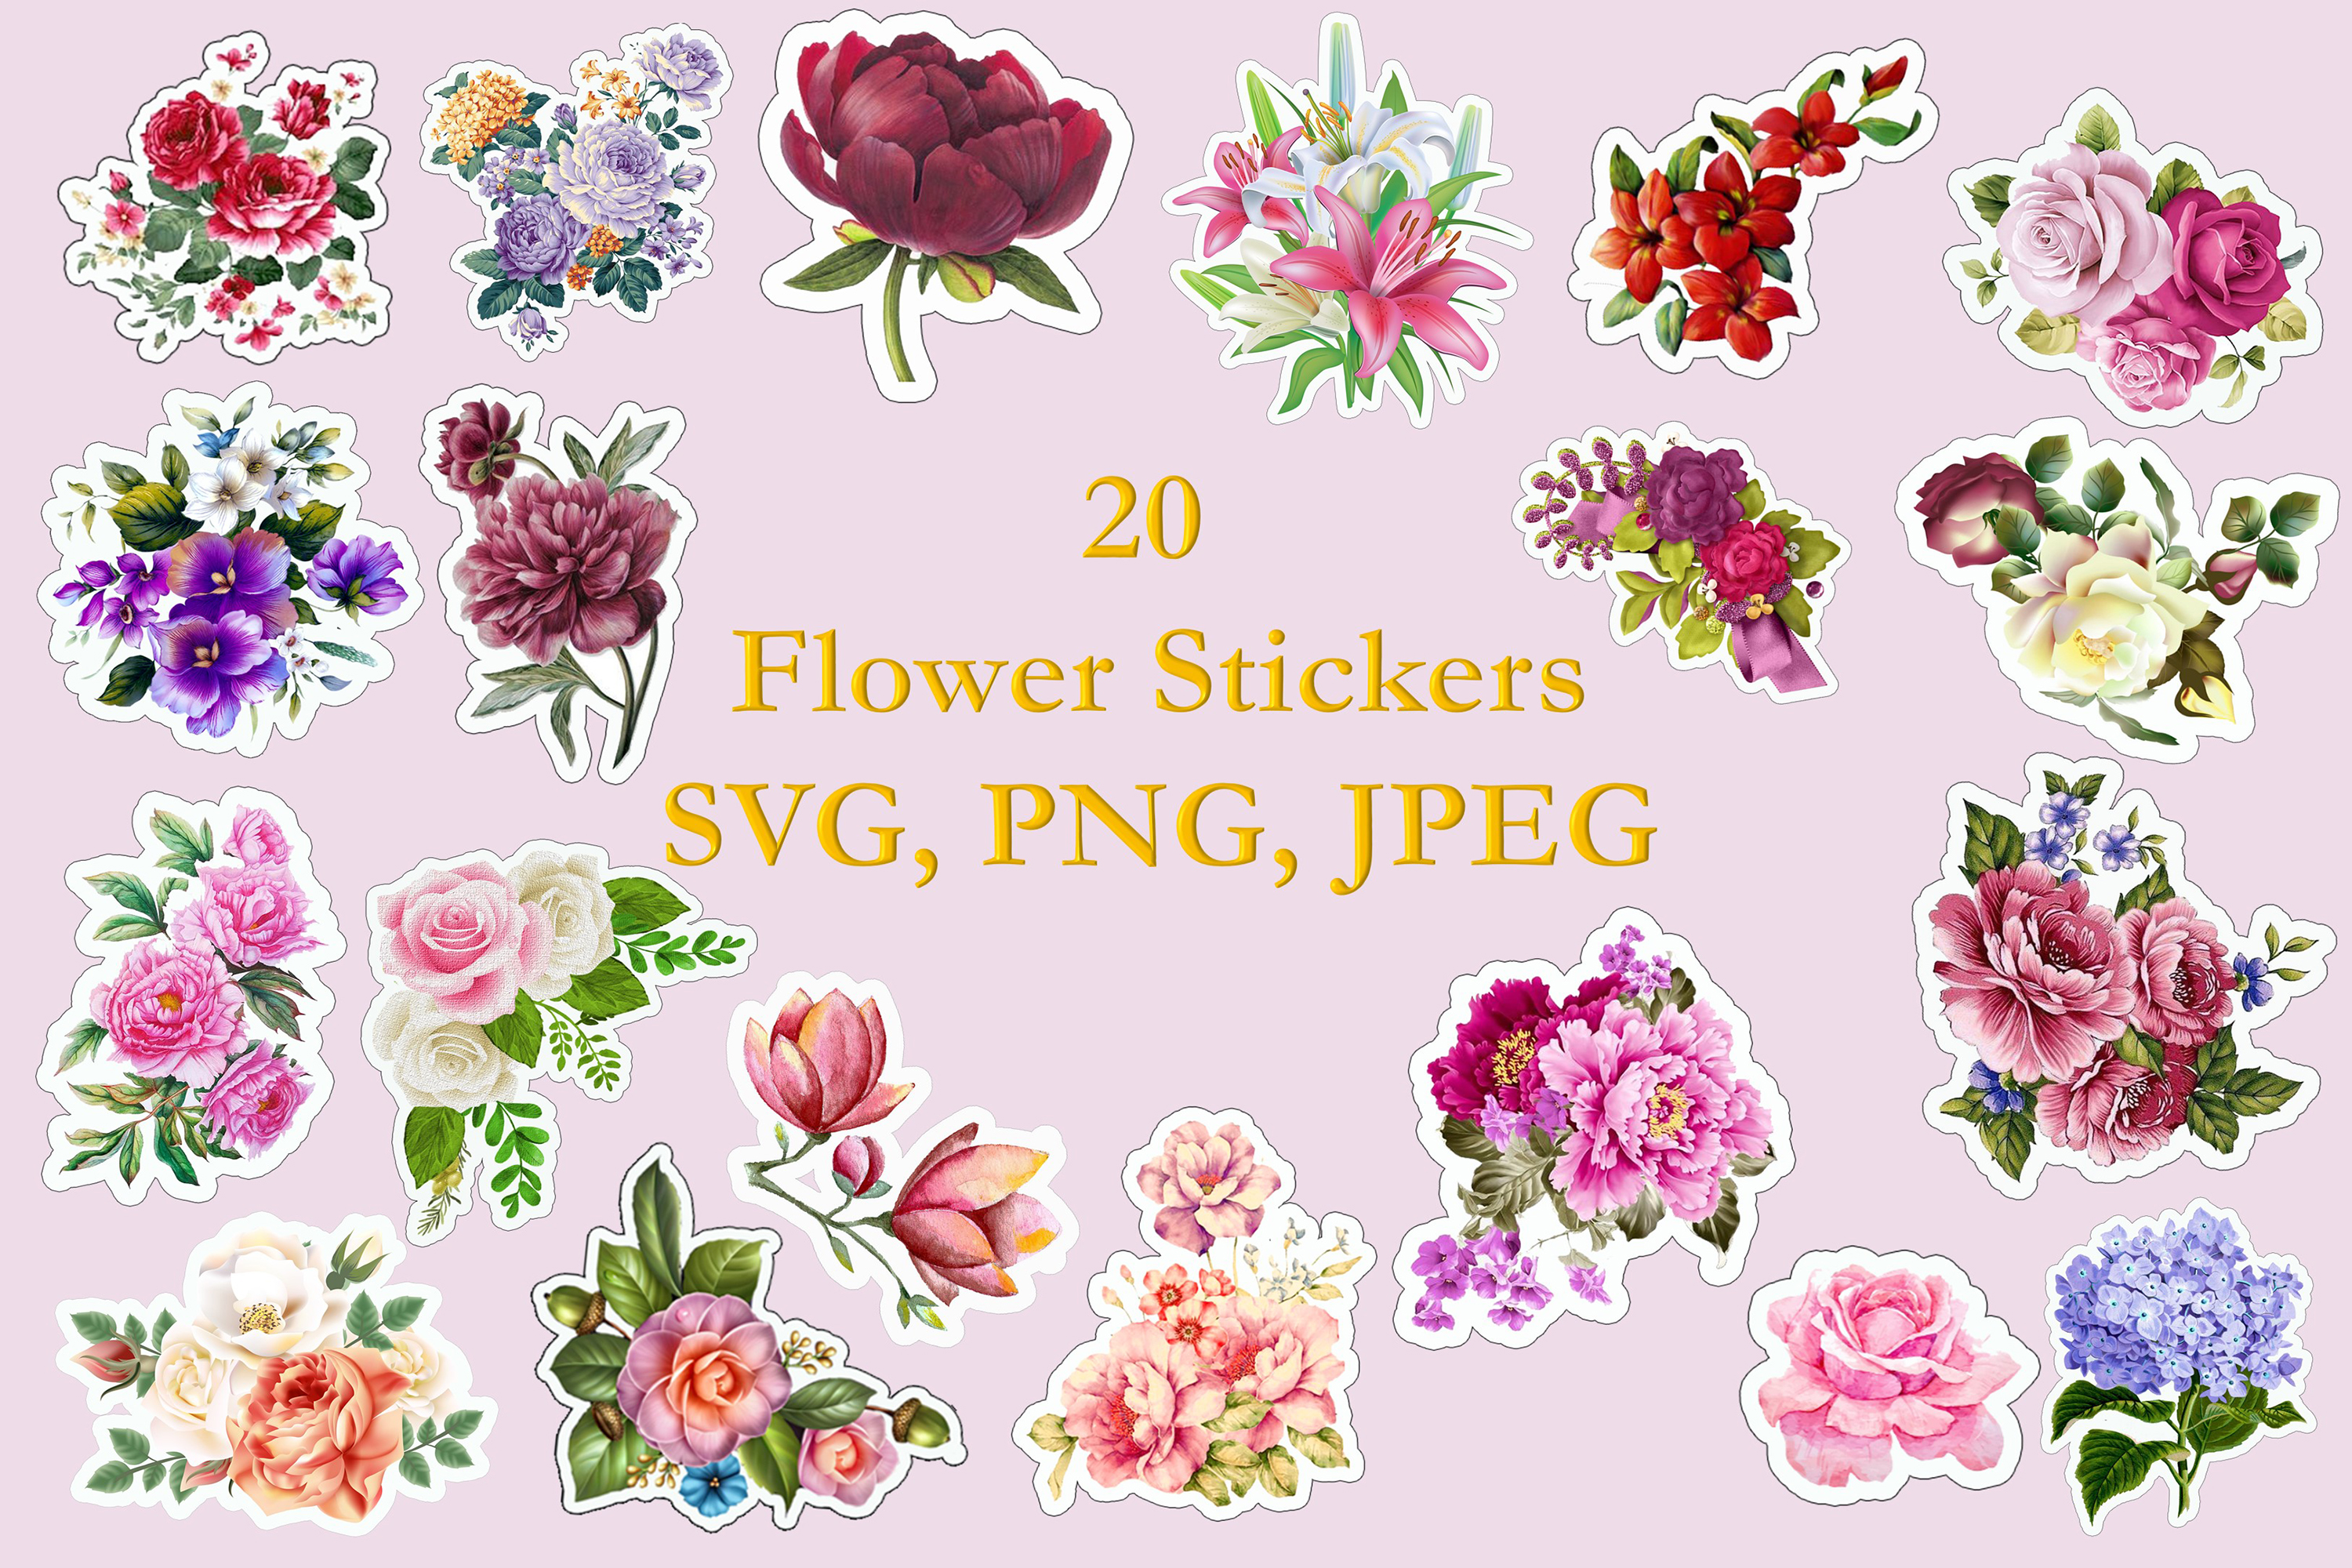 Flower Stickers SVG, PNG and JPEG Cricut, Silhouette. example image 1